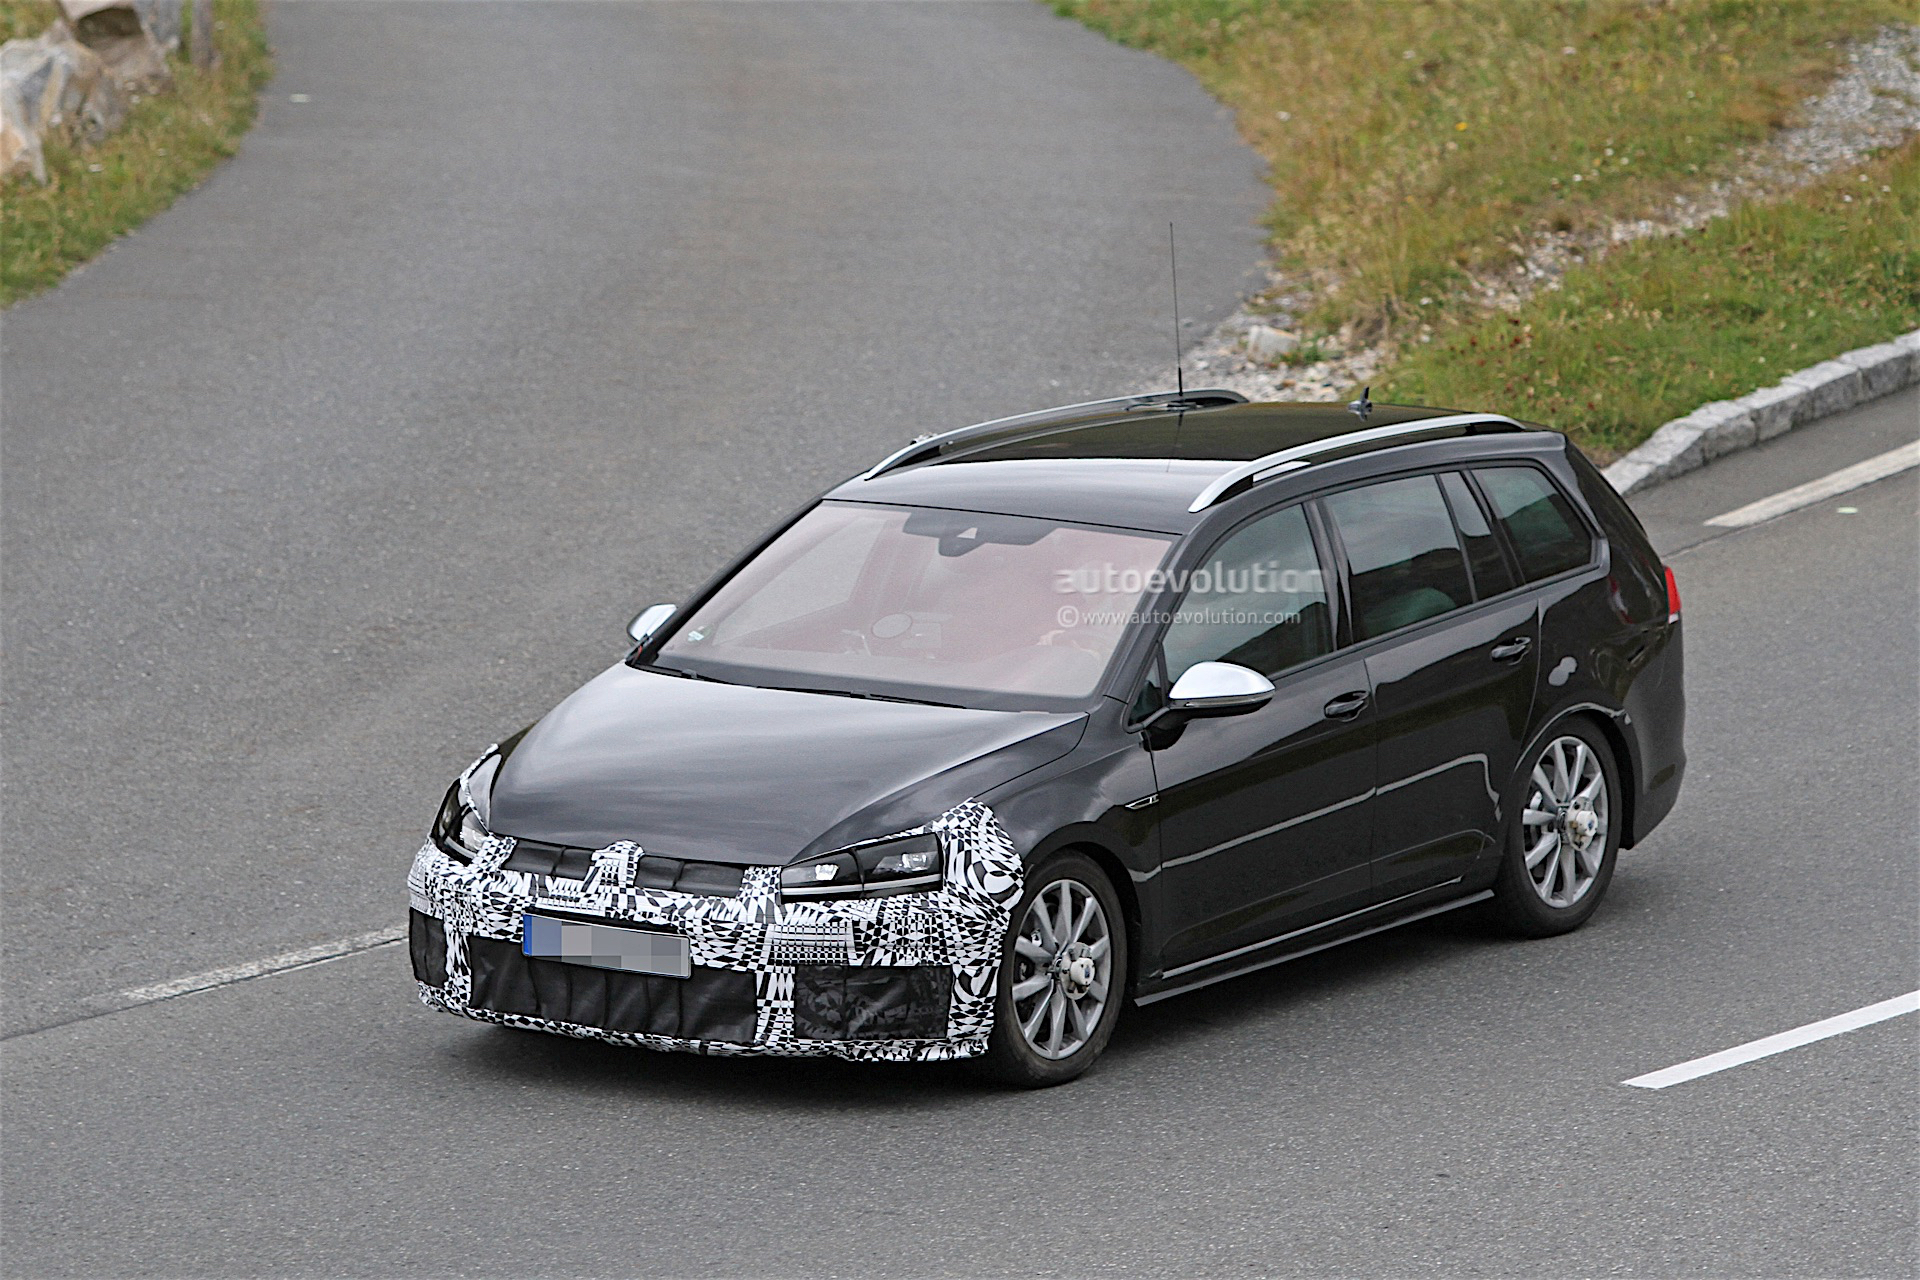 volkswagen golf r facelift spied testing with wagon body style autoevolution. Black Bedroom Furniture Sets. Home Design Ideas